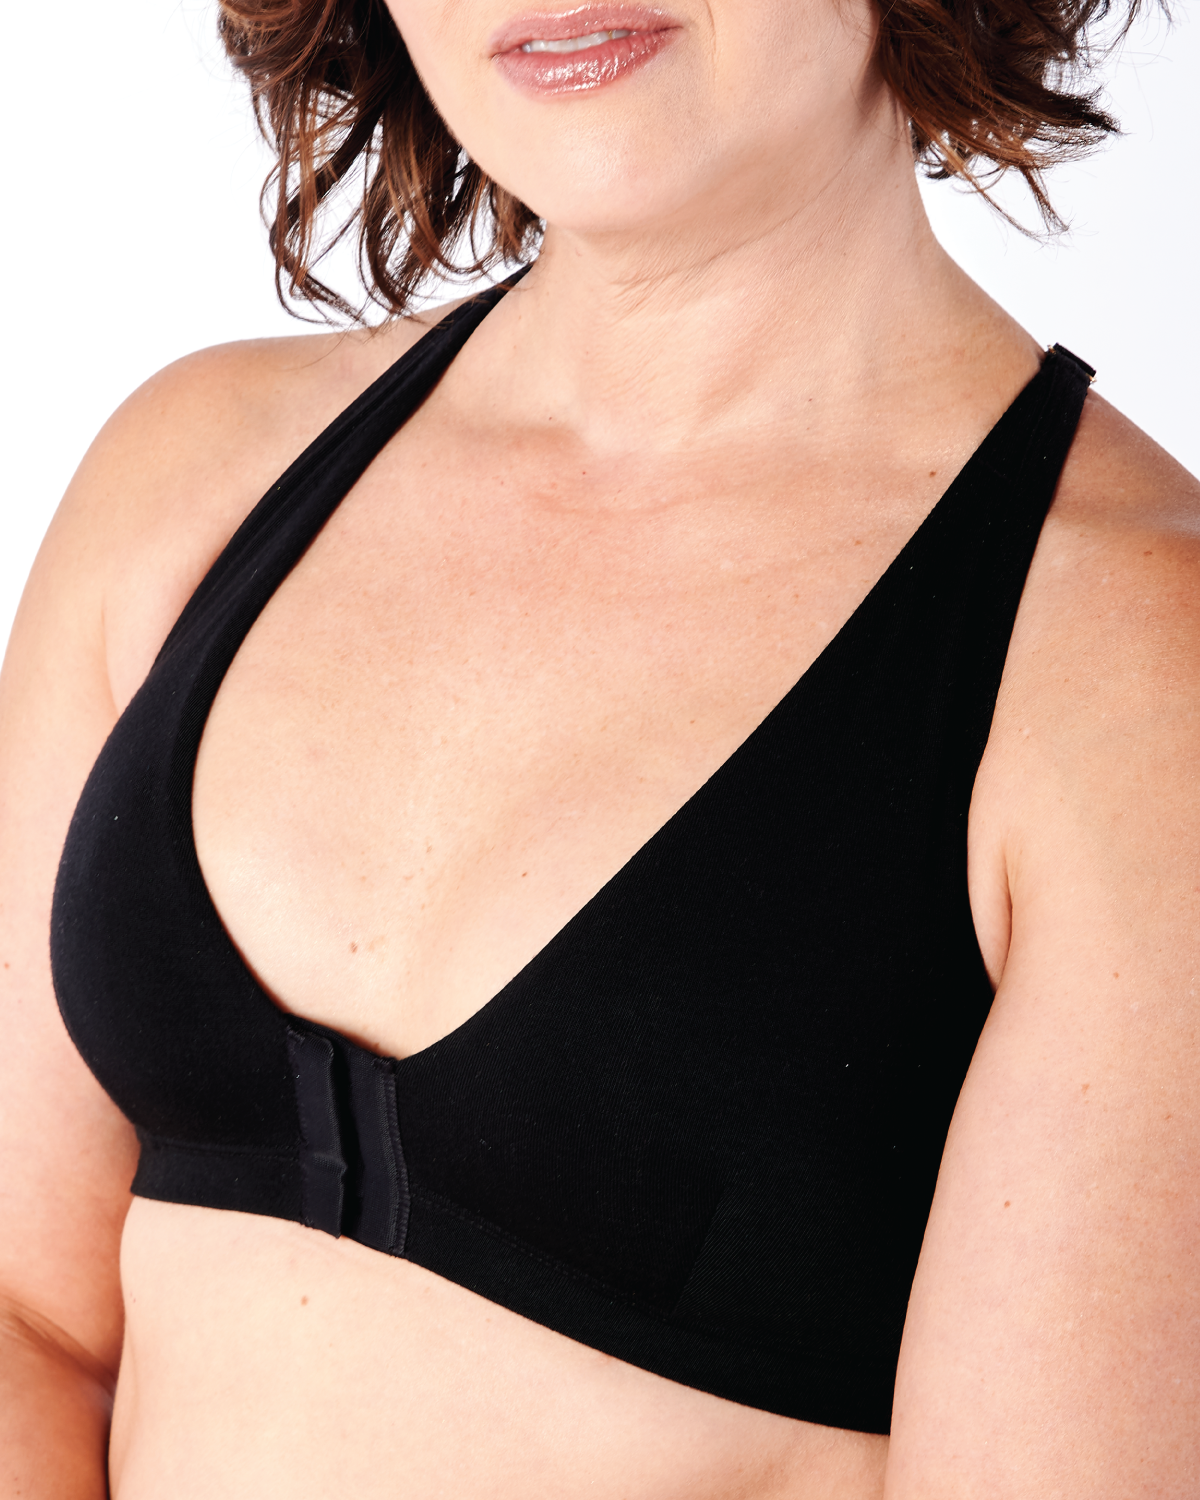 Black, pocketed front closure lace racerback bra with a plunging neckline and soft wire free cups on model with breast implants.